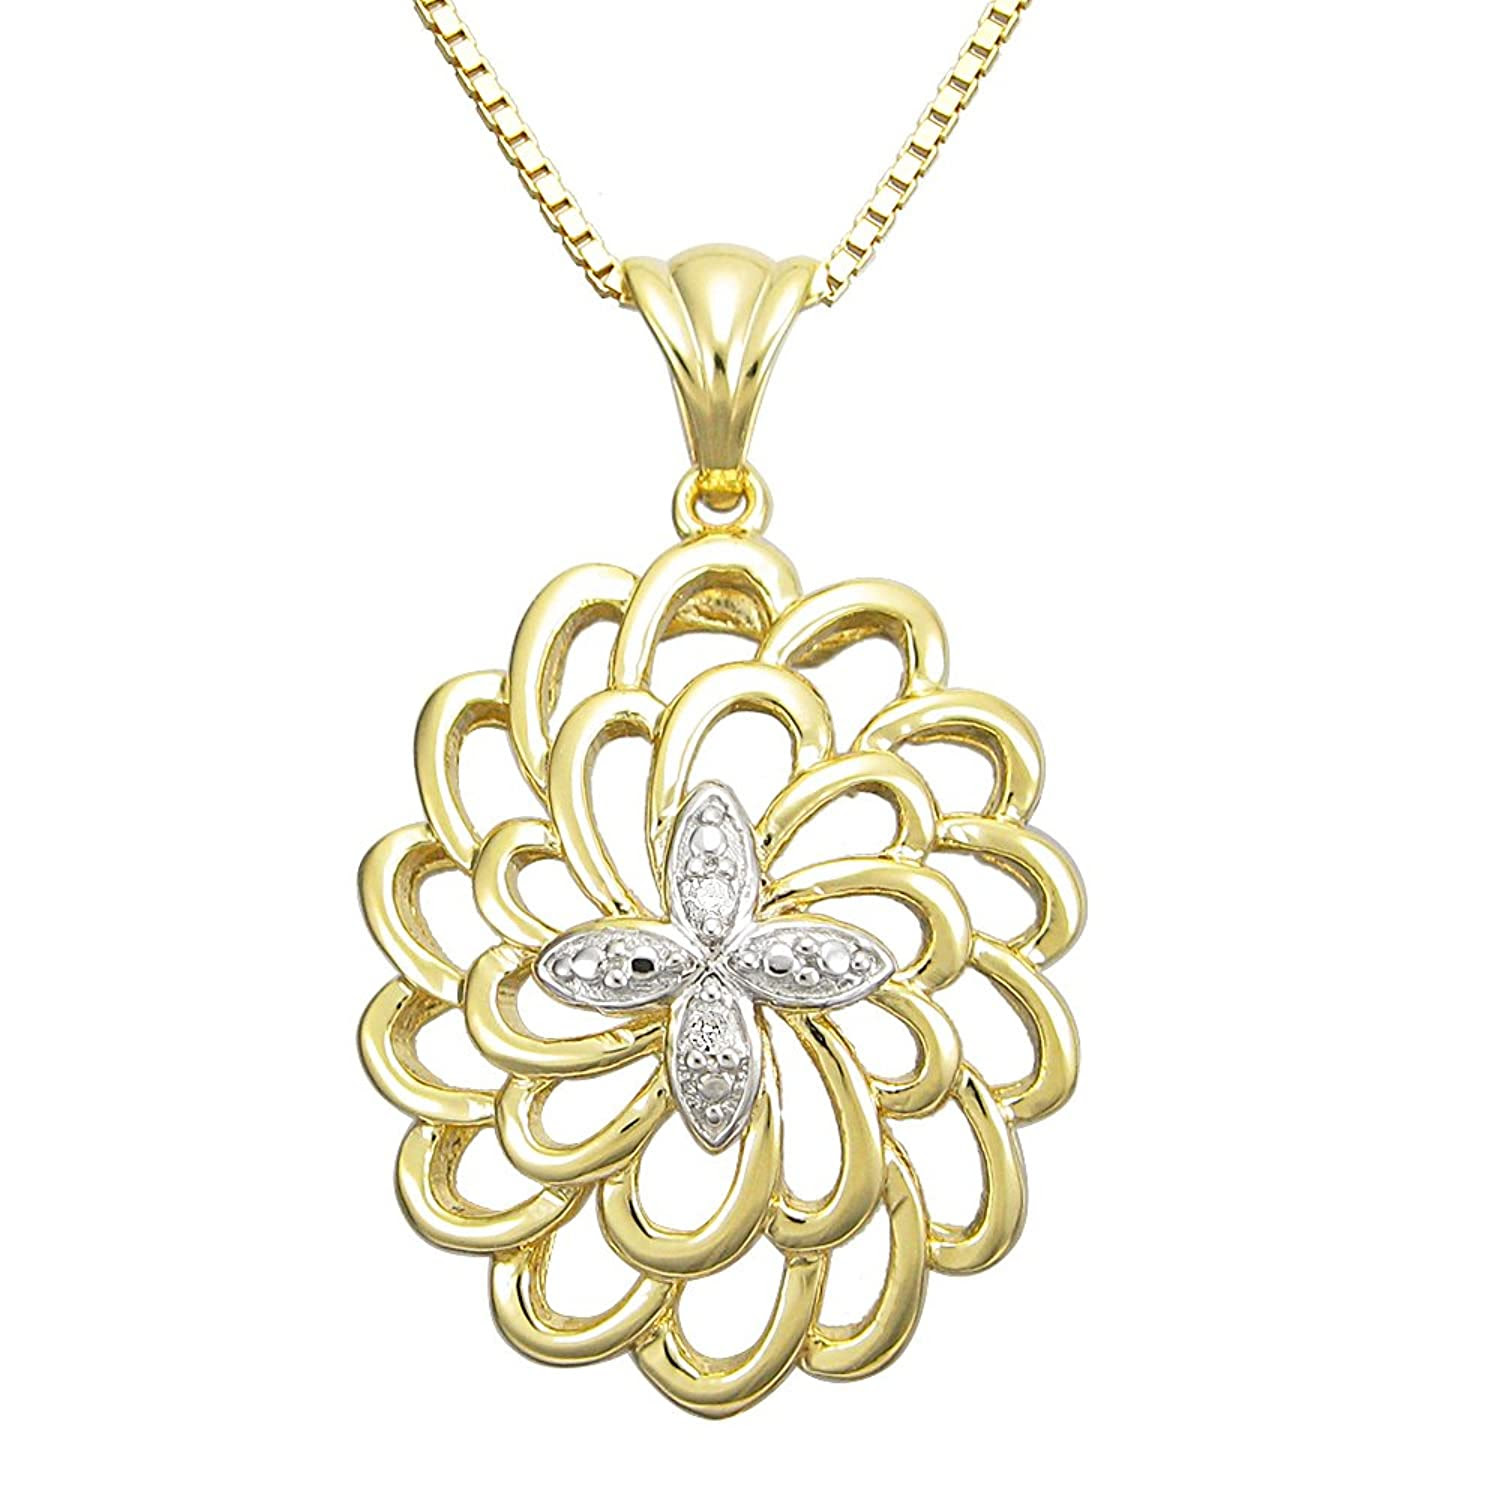 18k gold plated sterling silver with diamond accent cross design